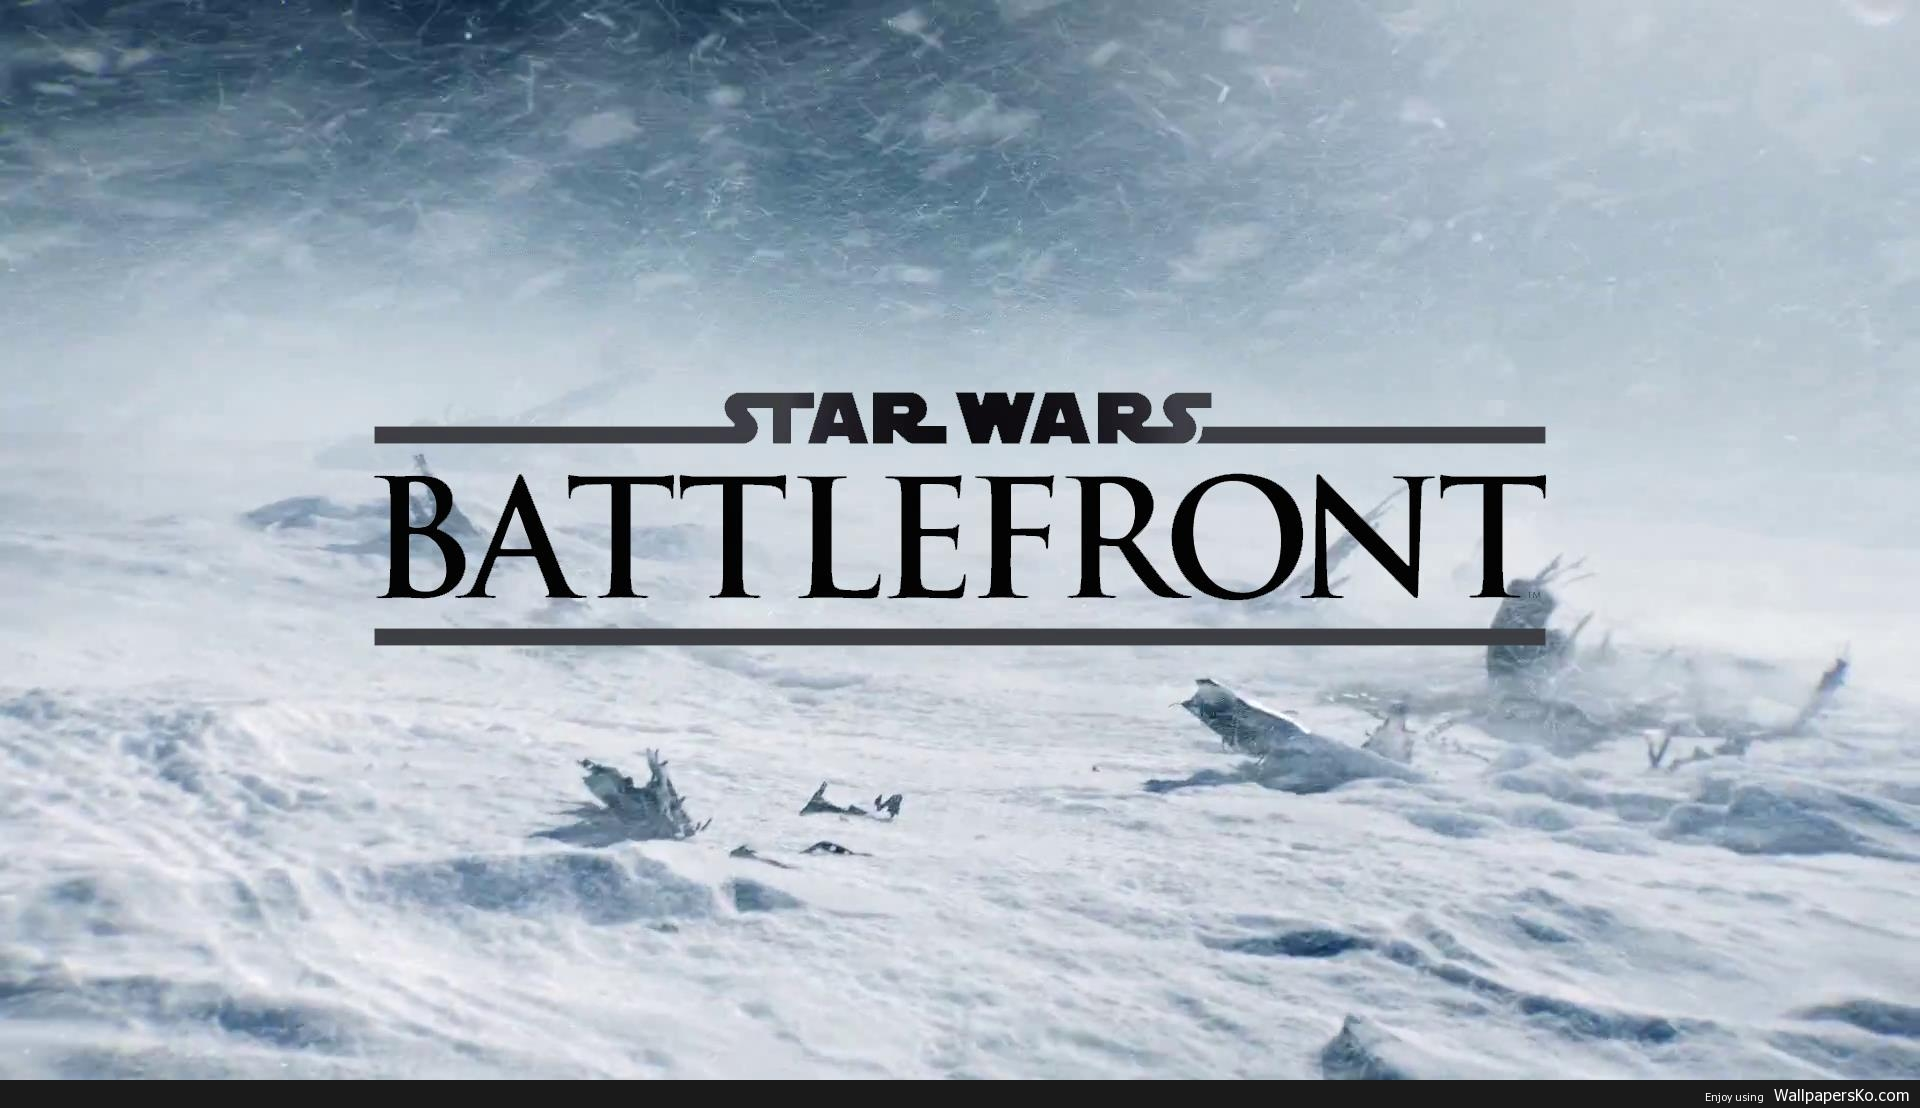 Star Wars Battlefront 3 Wallpaper 1920 1080 Hd Wallpapers Download